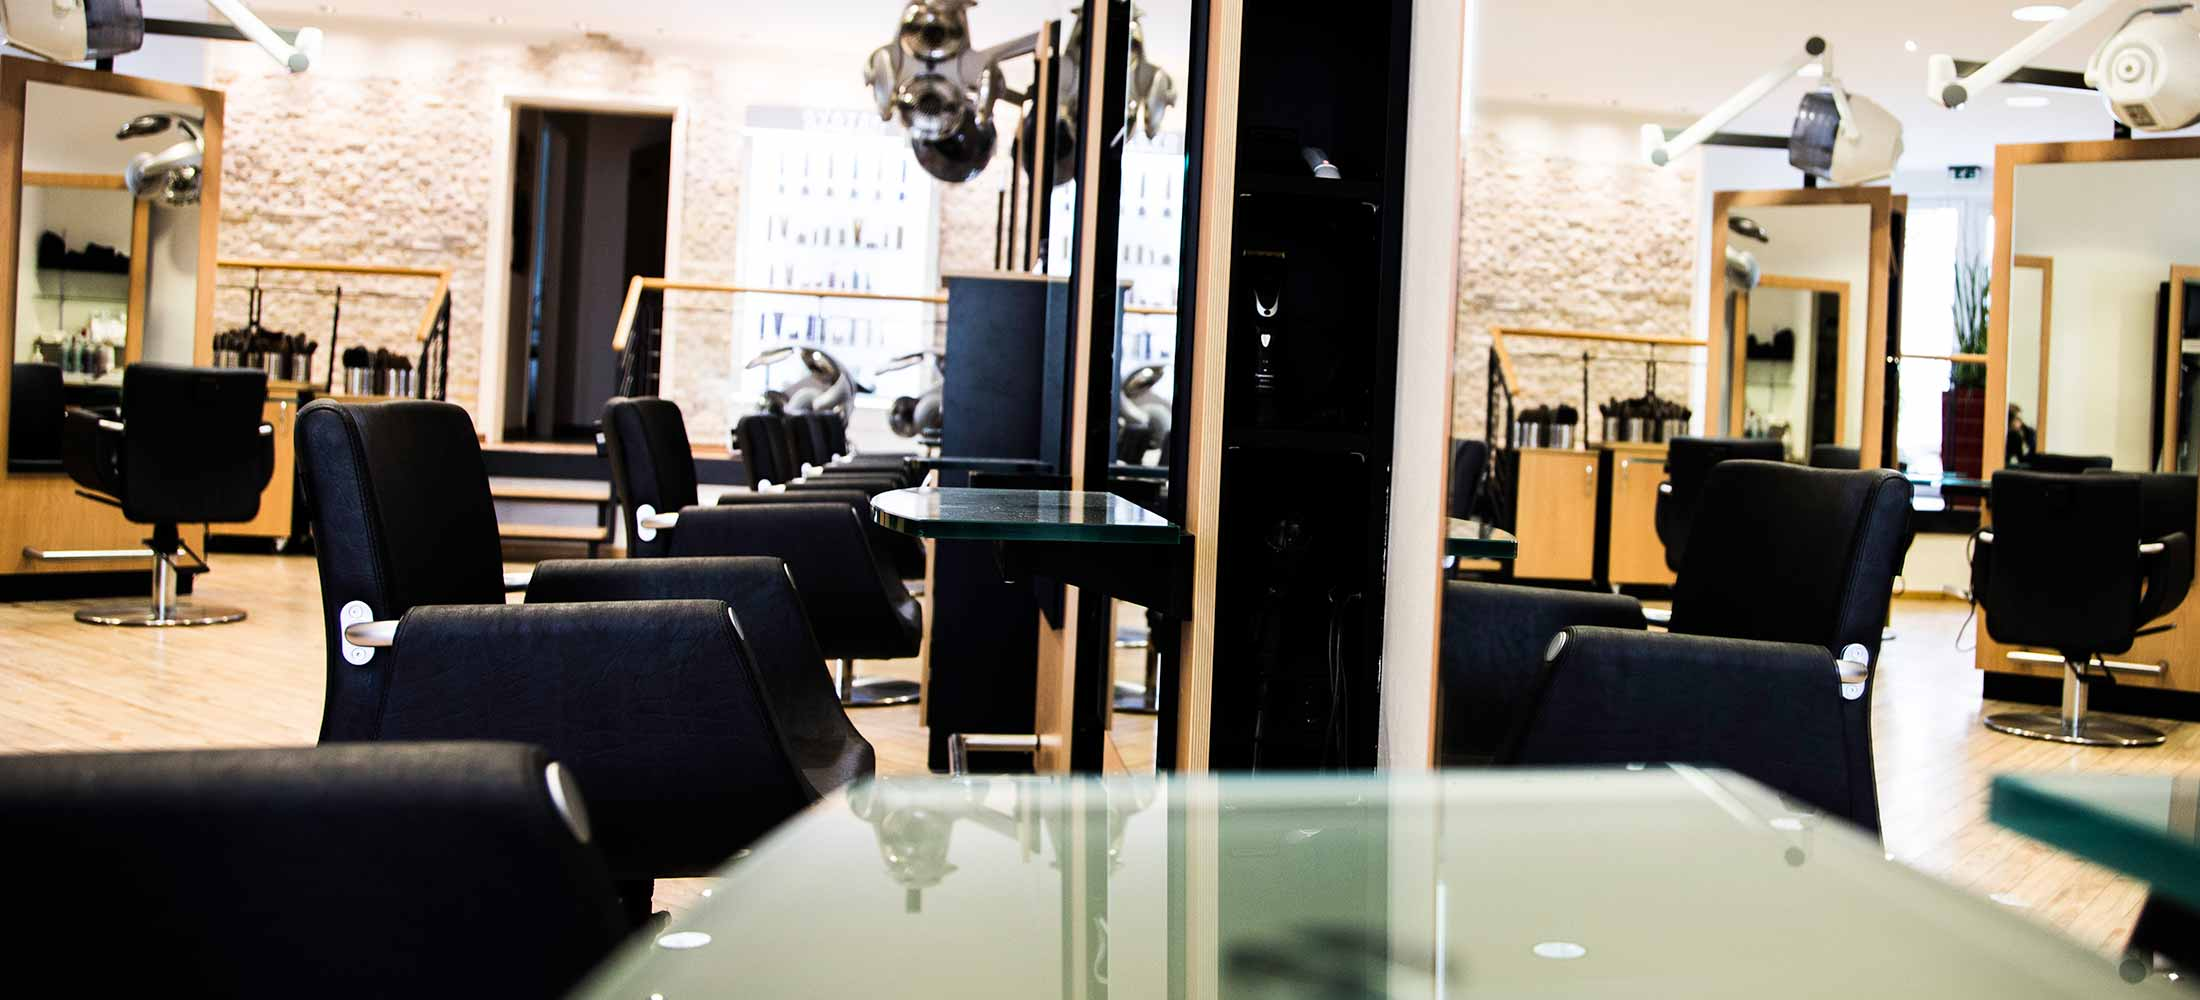 Frisursalon in Bad Honnef